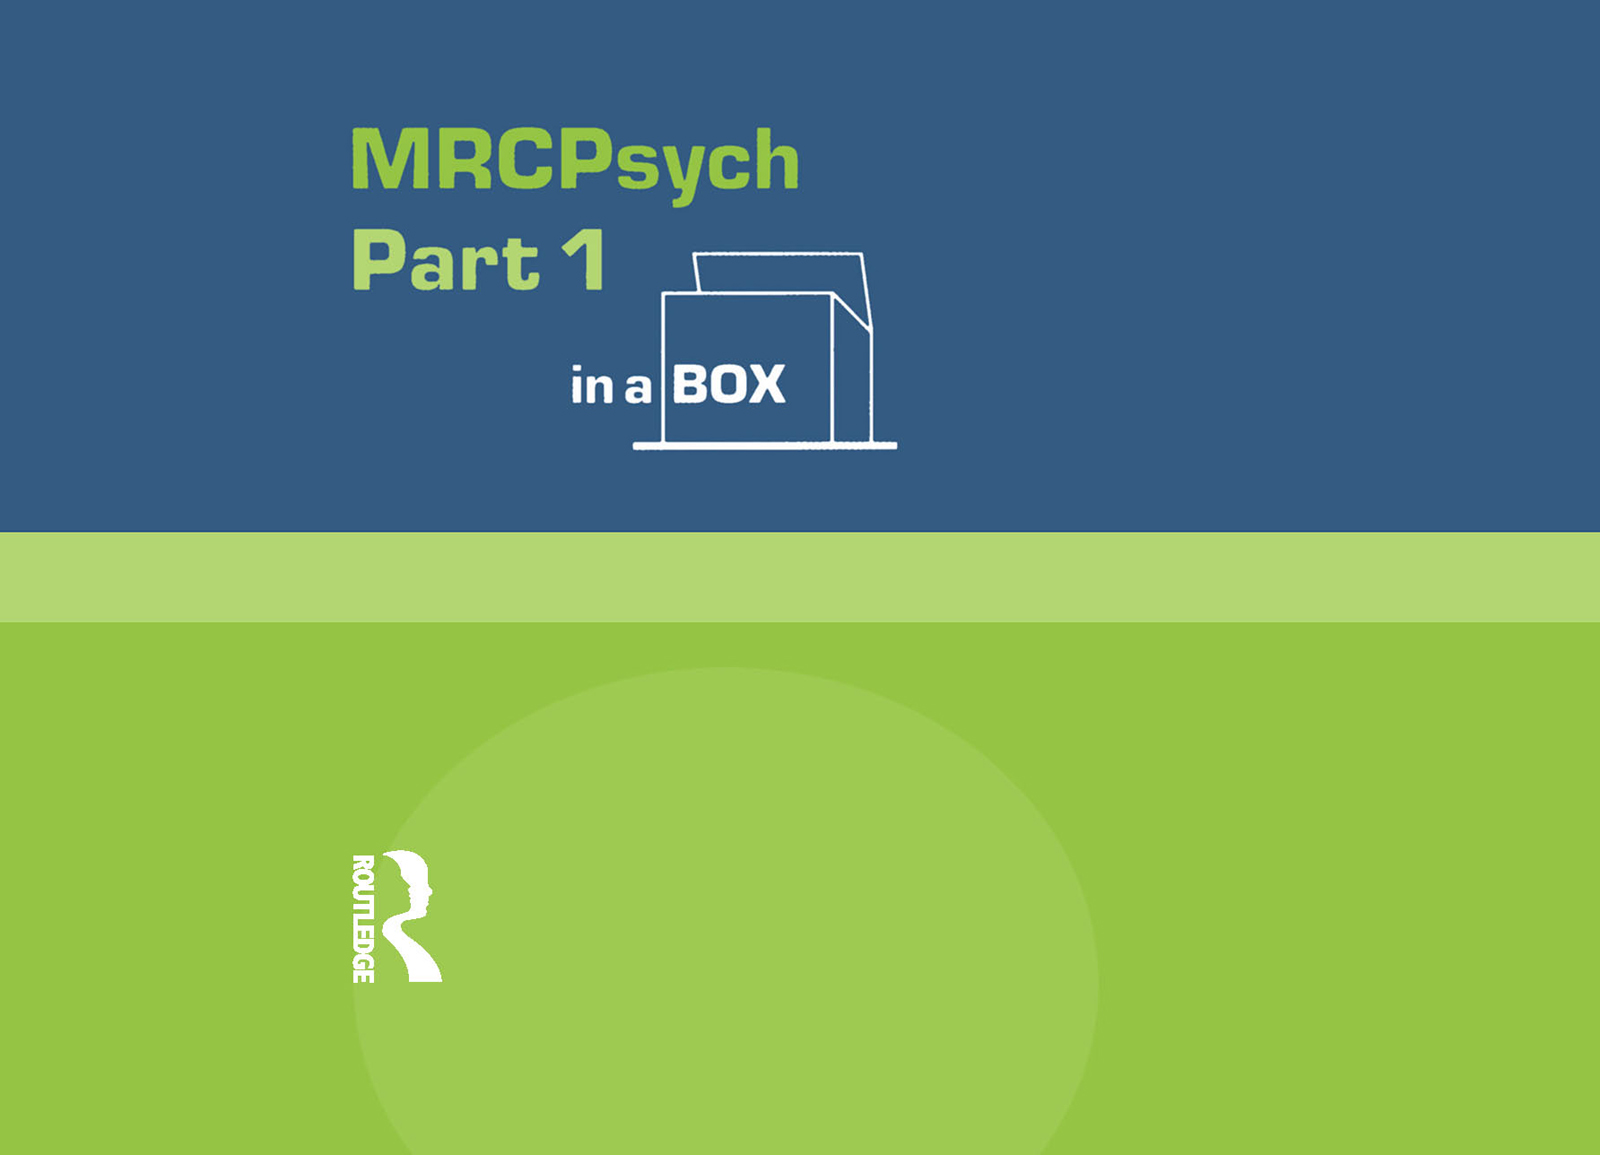 MRC Psych Part 1 In a Box (Hardback) book cover